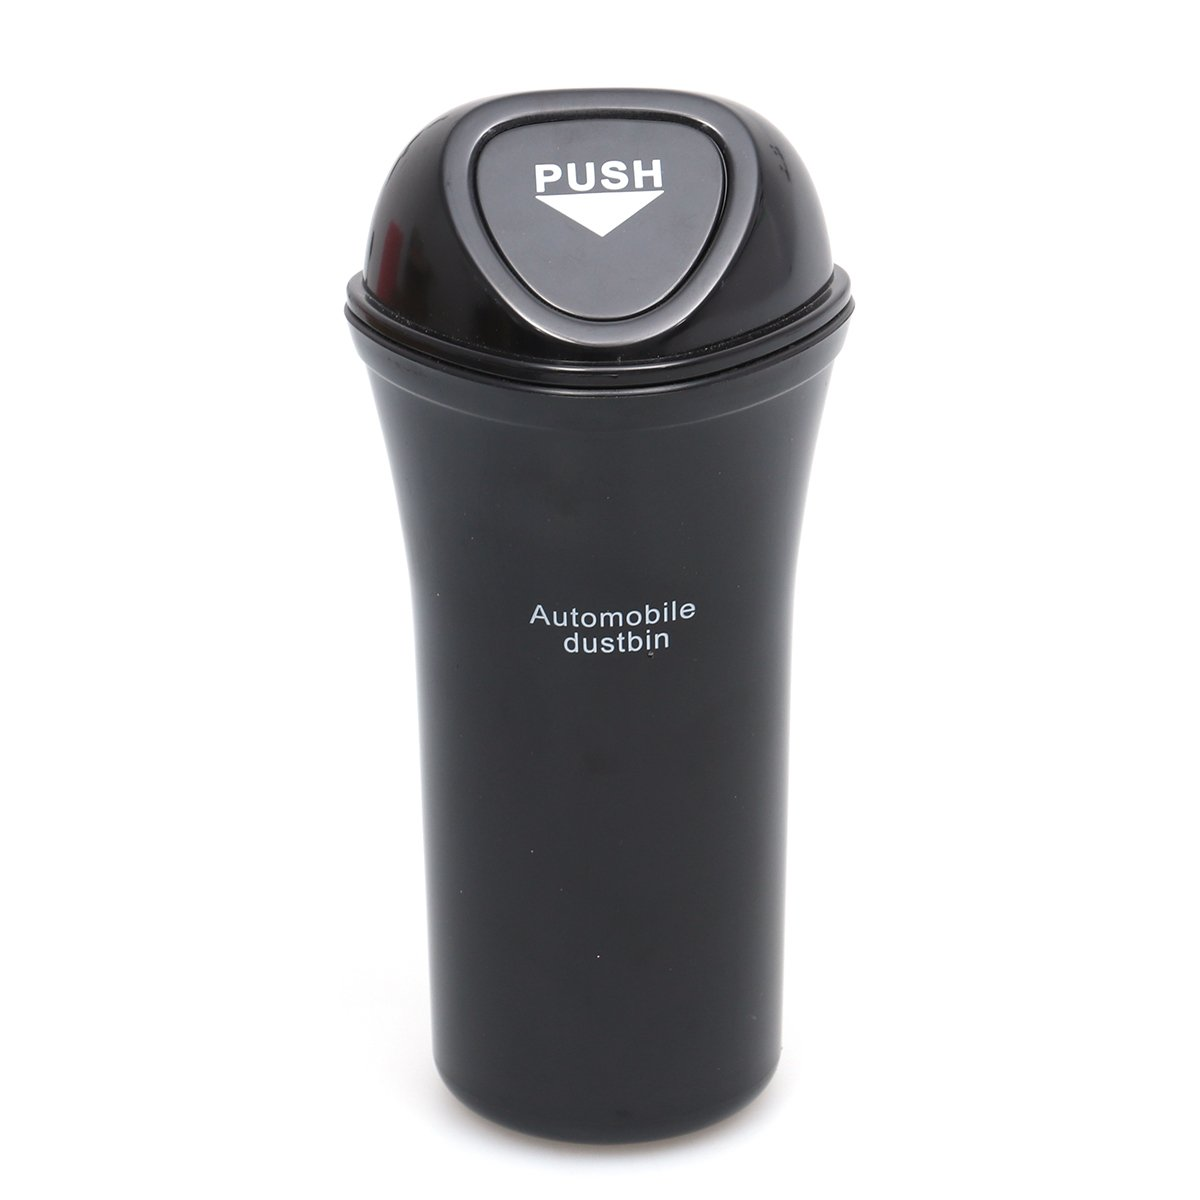 Black LIOOBO Portable Mini Automobile Dustbin Car Trash Can Car Organizer Leakproof Vehicle Trash Bin Garbage Can